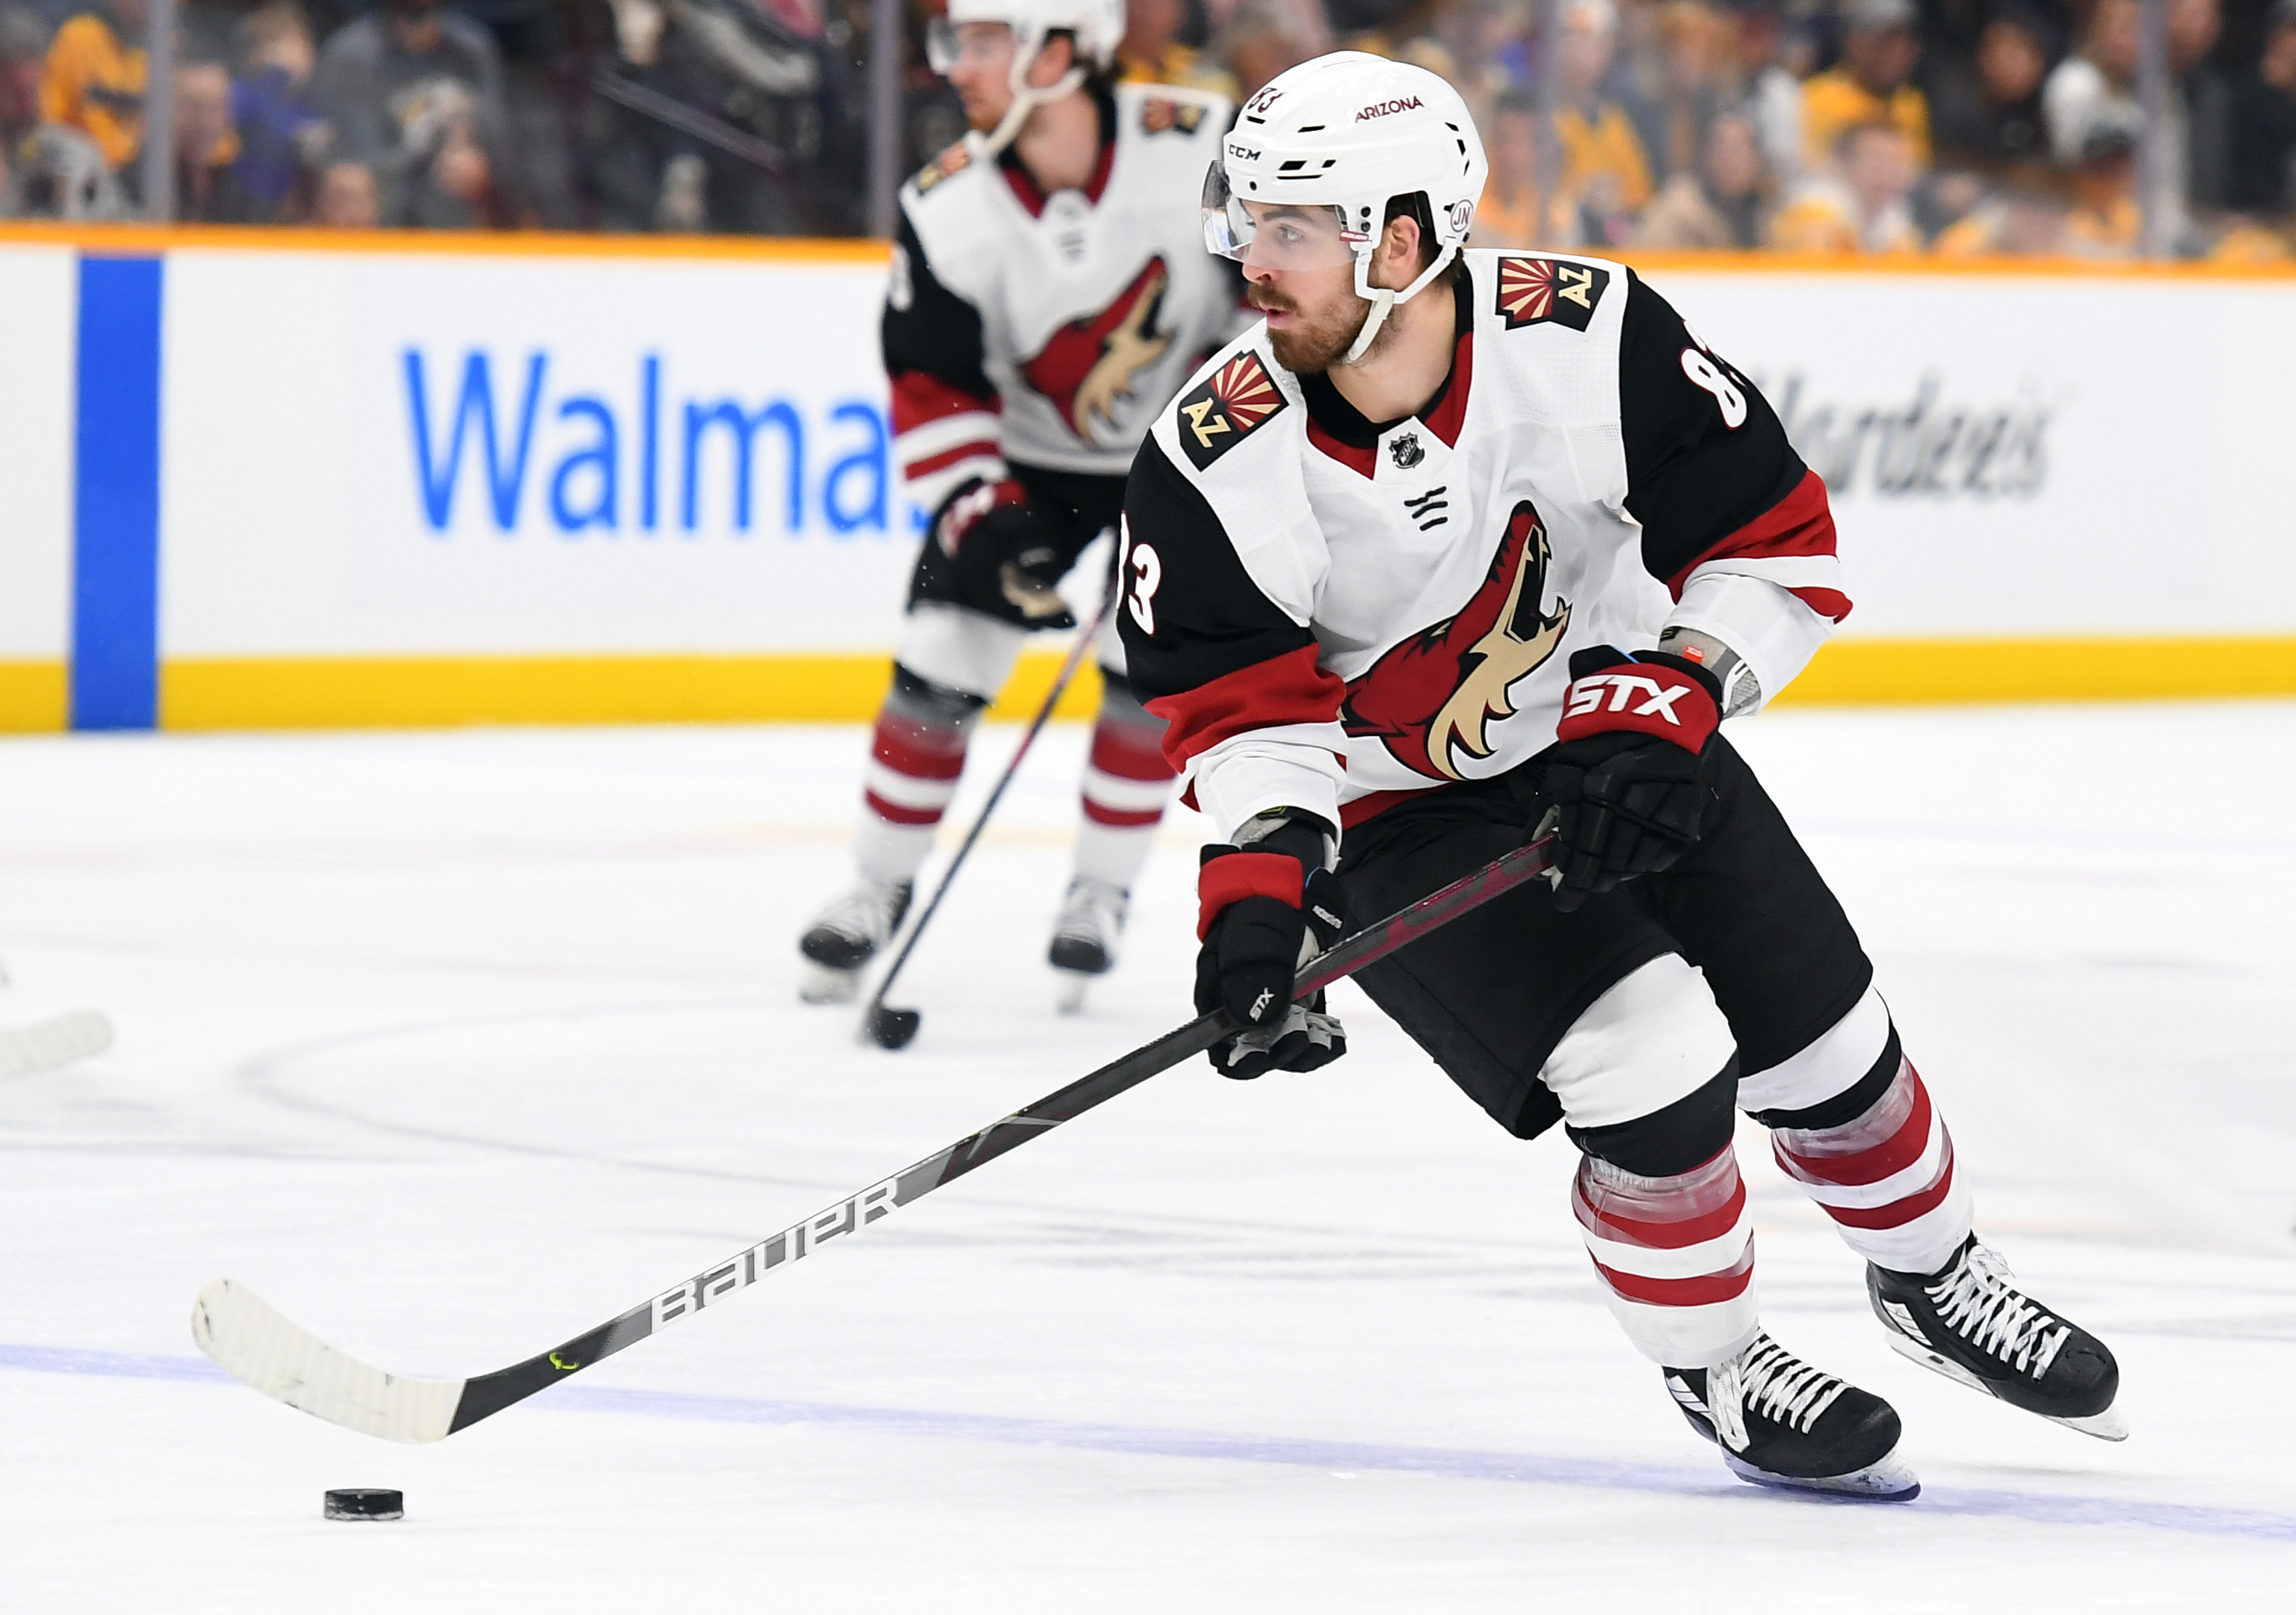 Dec 23, 2019; Nashville, Tennessee, USA; Arizona Coyotes right wing Conor Garland (83) skates the puck into the offensive zone during the second period against the Nashville Predators at Bridgestone Arena.